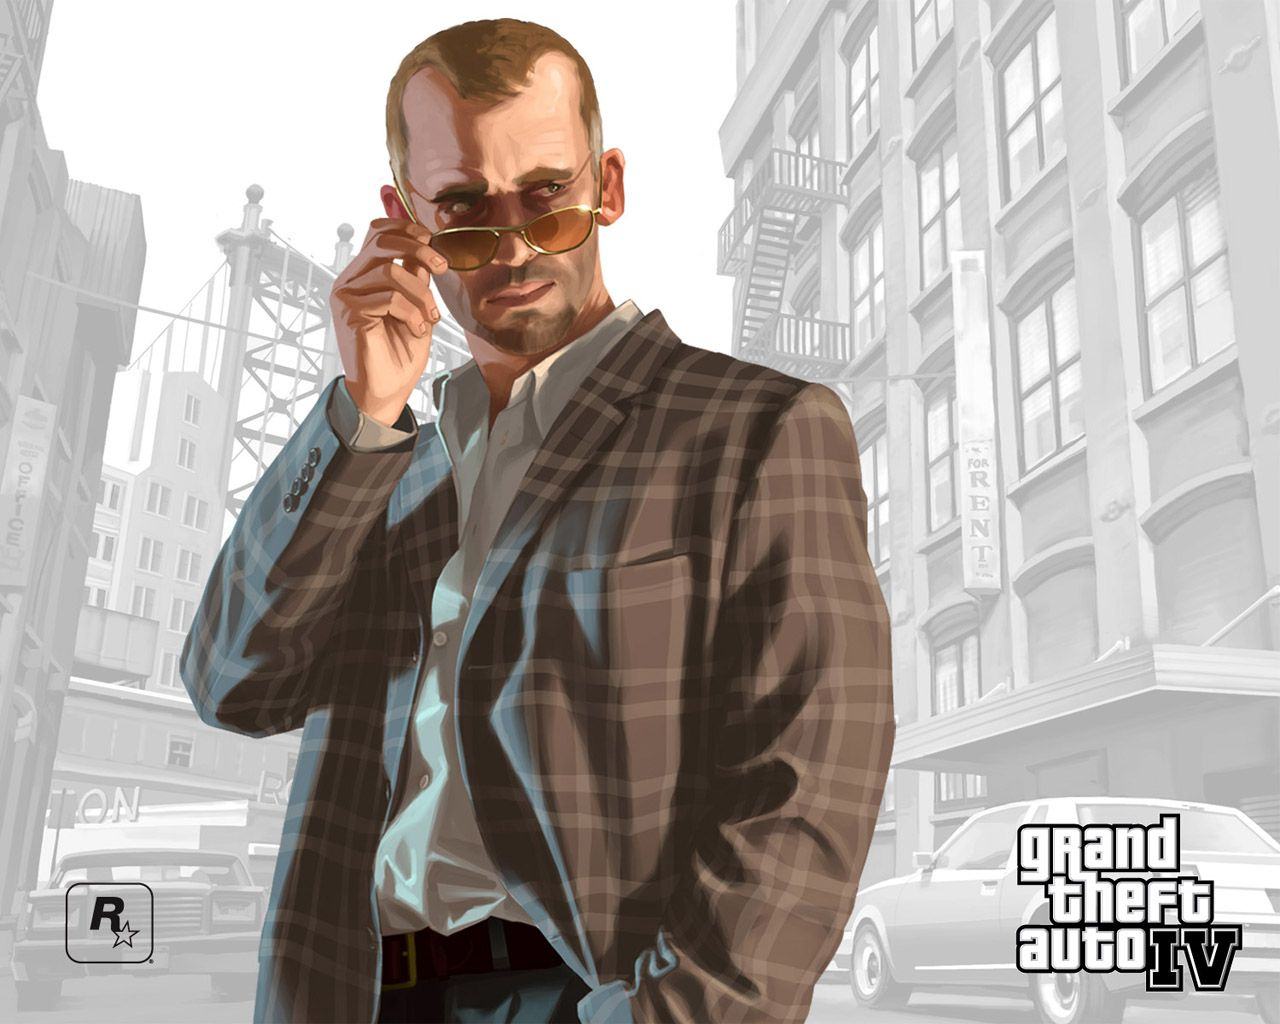 Grand Theft Auto Iv Grand Theft Auto 4 Wallpapers Gta 4 Gta Jogos